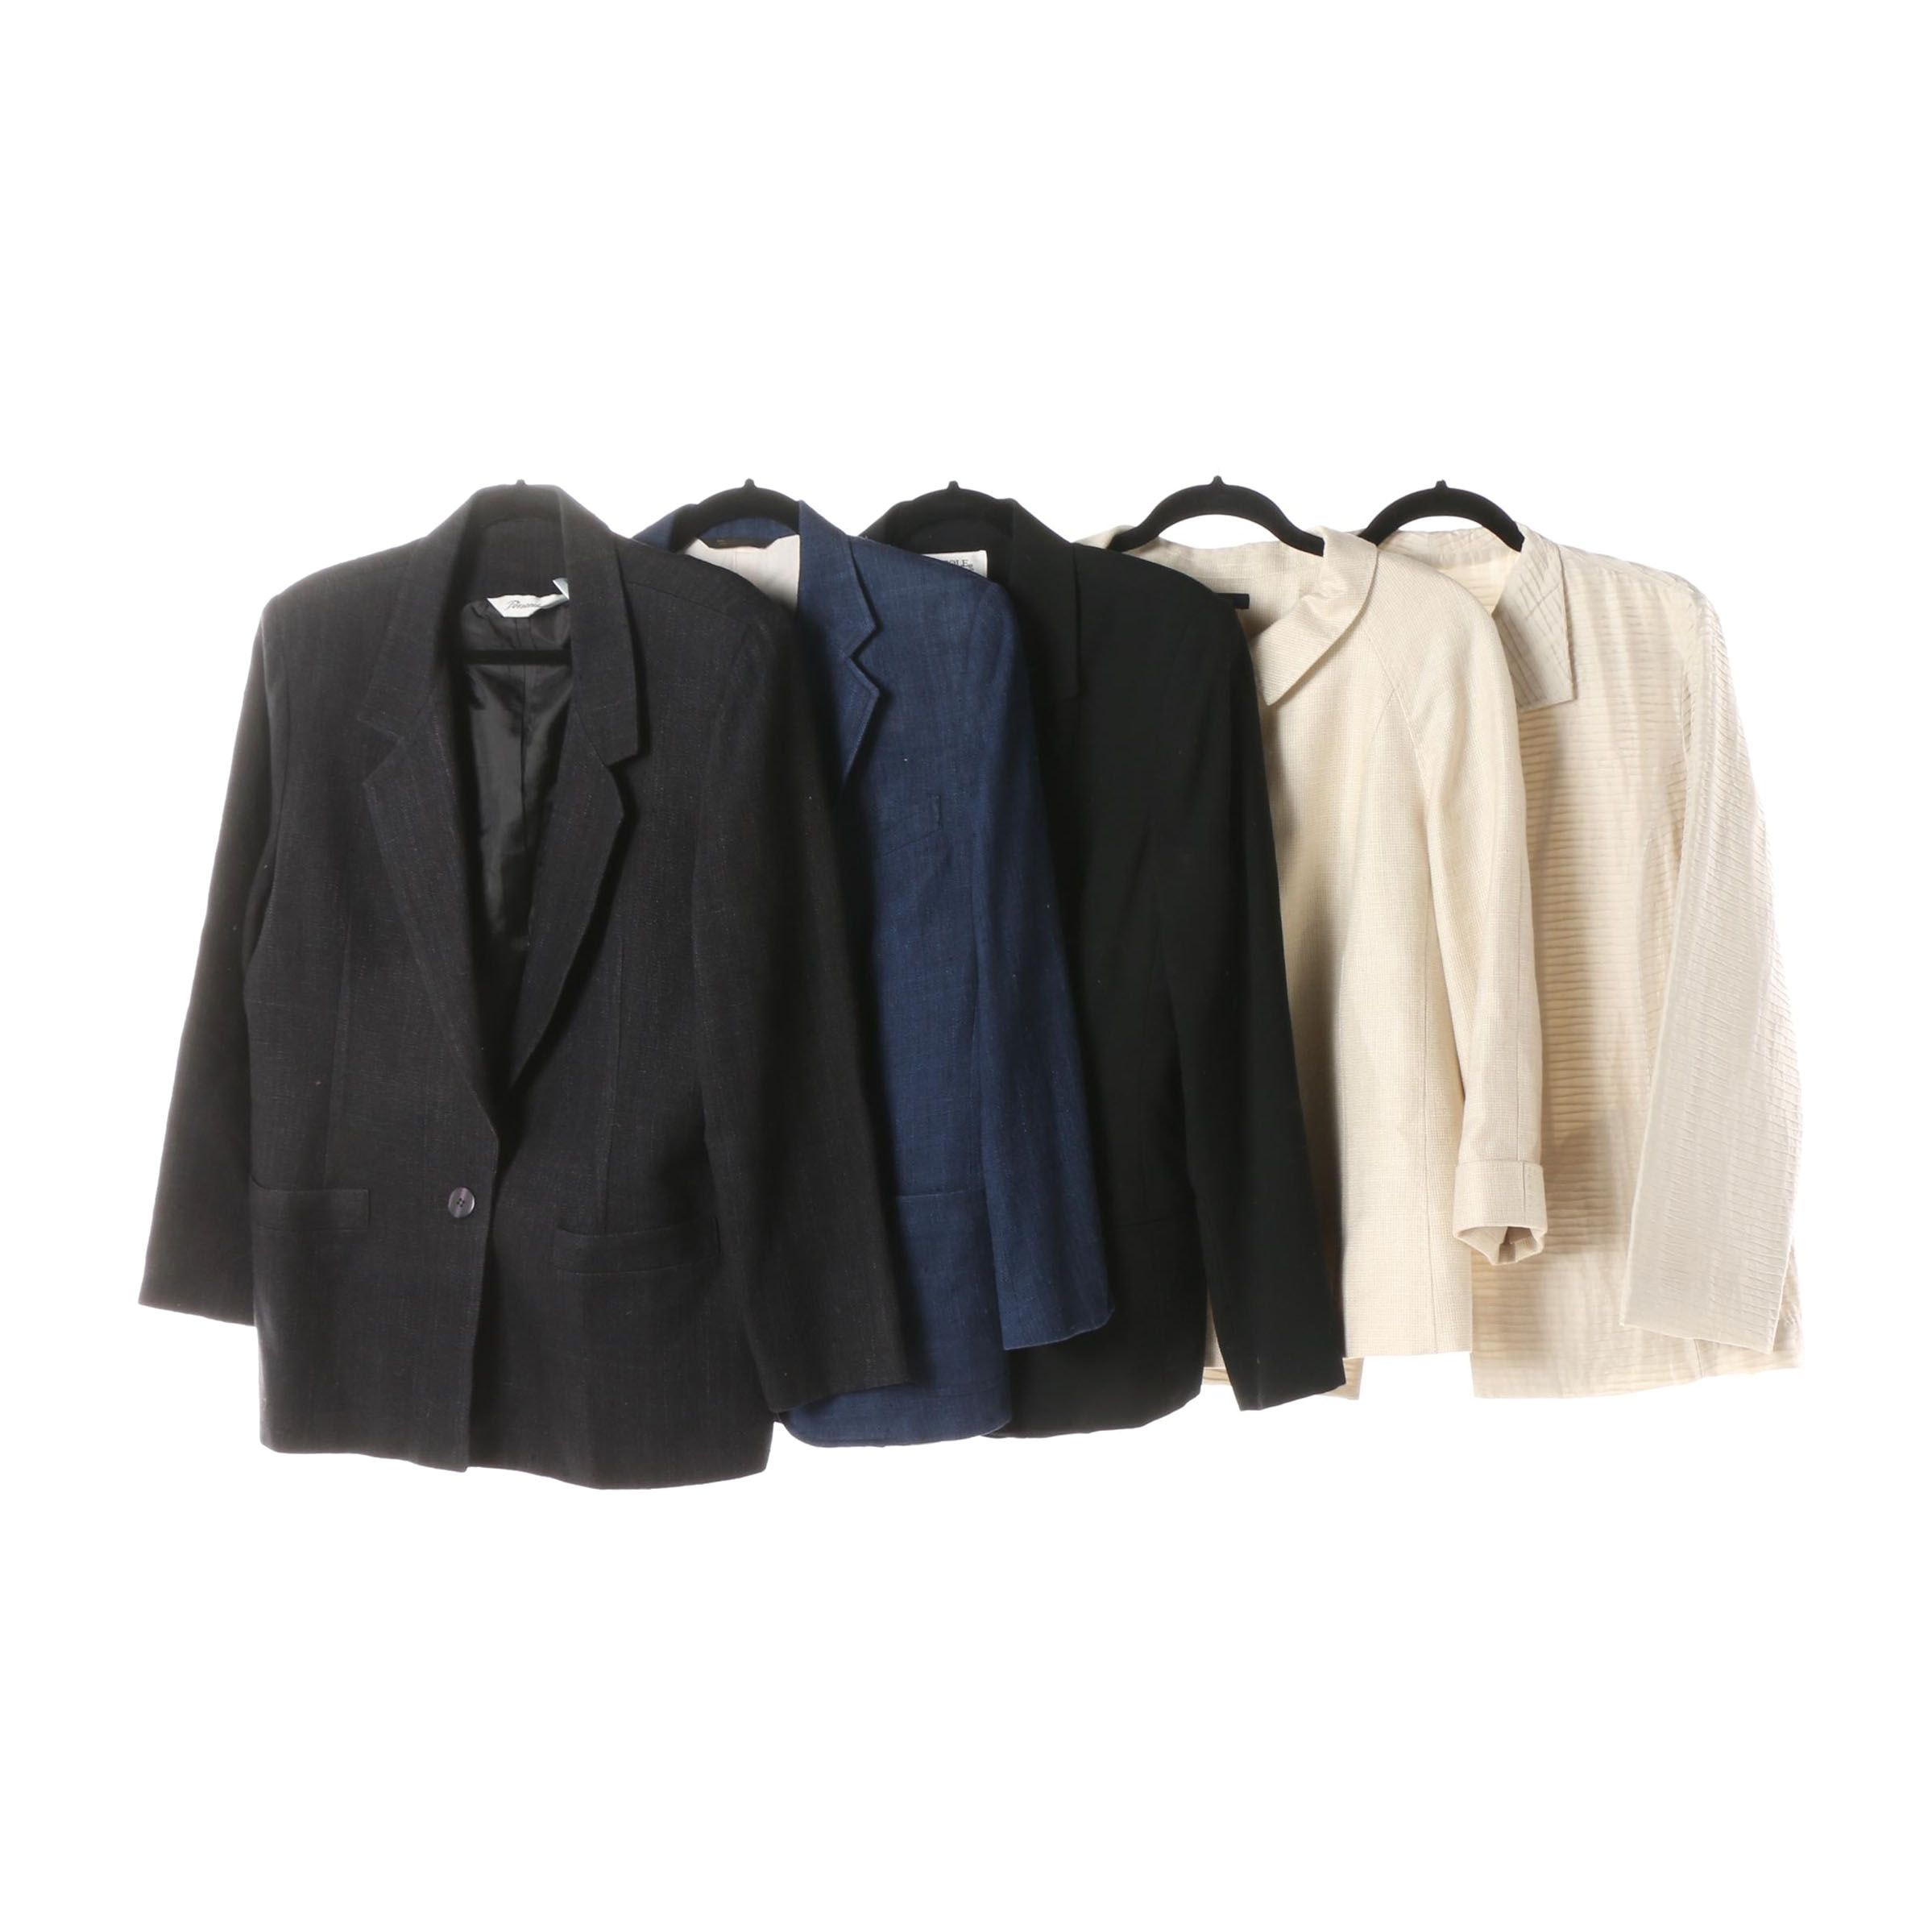 Women's Eileen Fisher, Brooks Brothers, Mark Shale and Nicole Summers Jackets